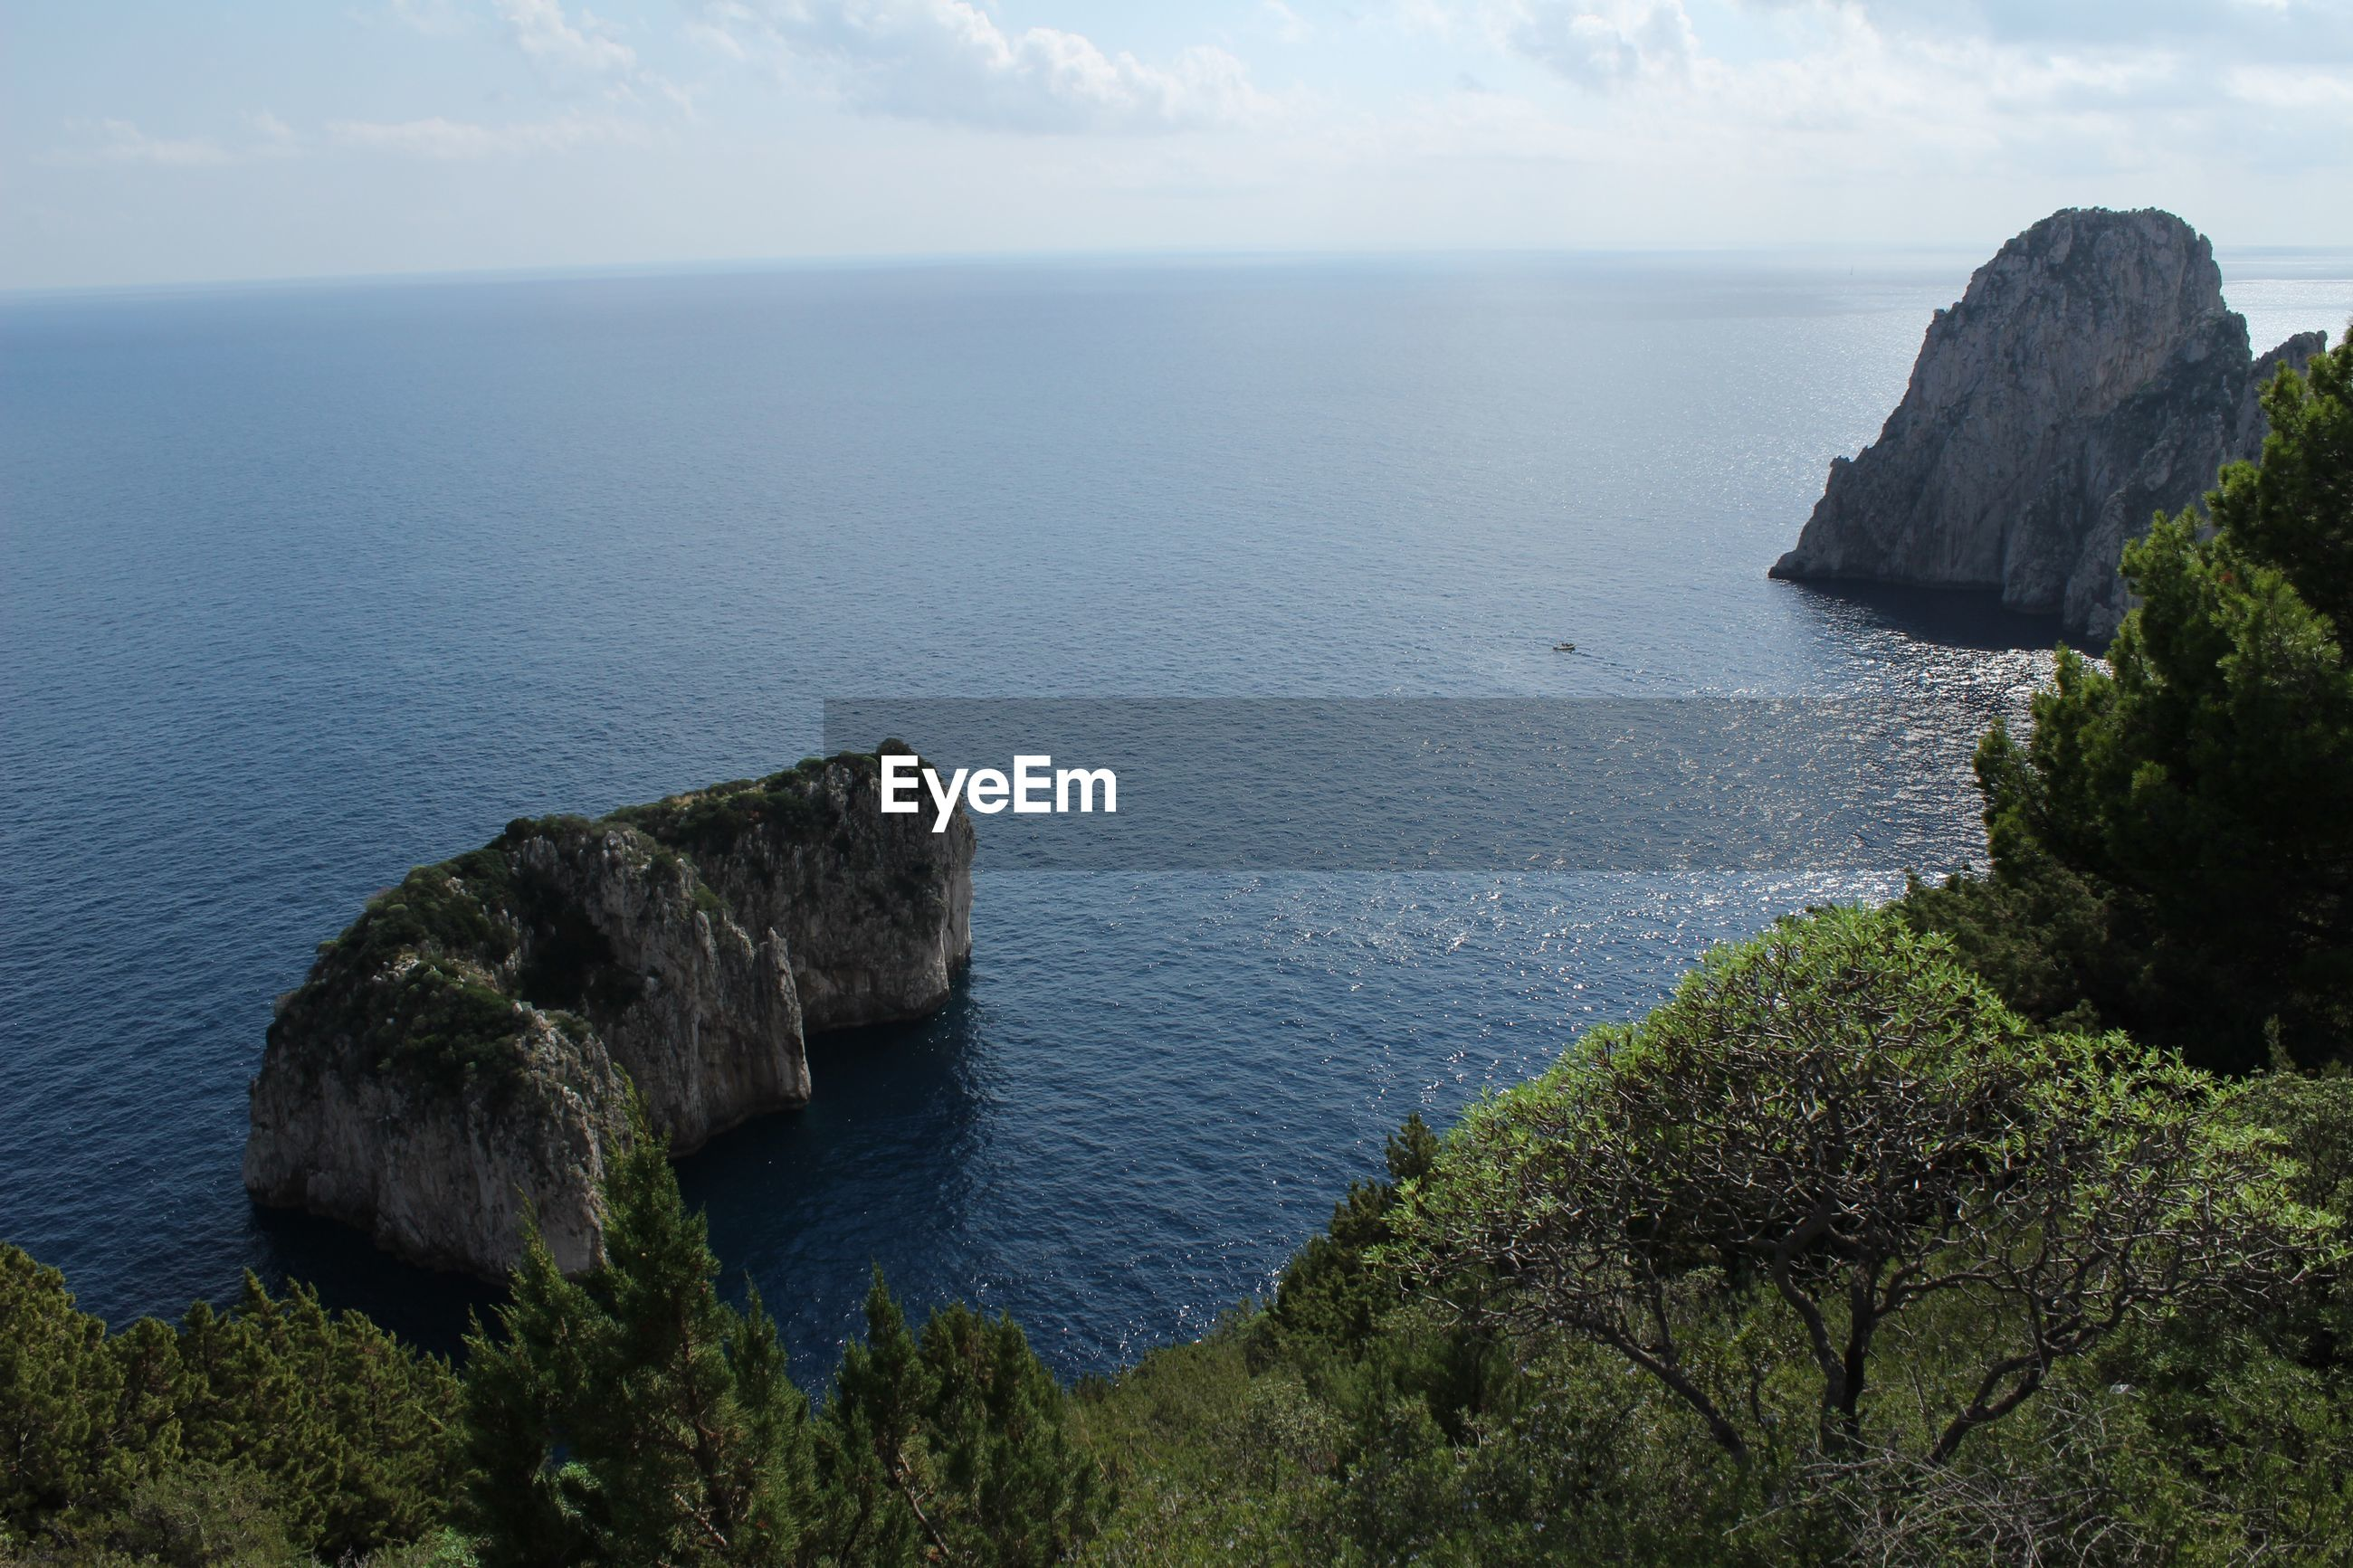 SCENIC VIEW OF ROCK FORMATIONS IN SEA AGAINST SKY